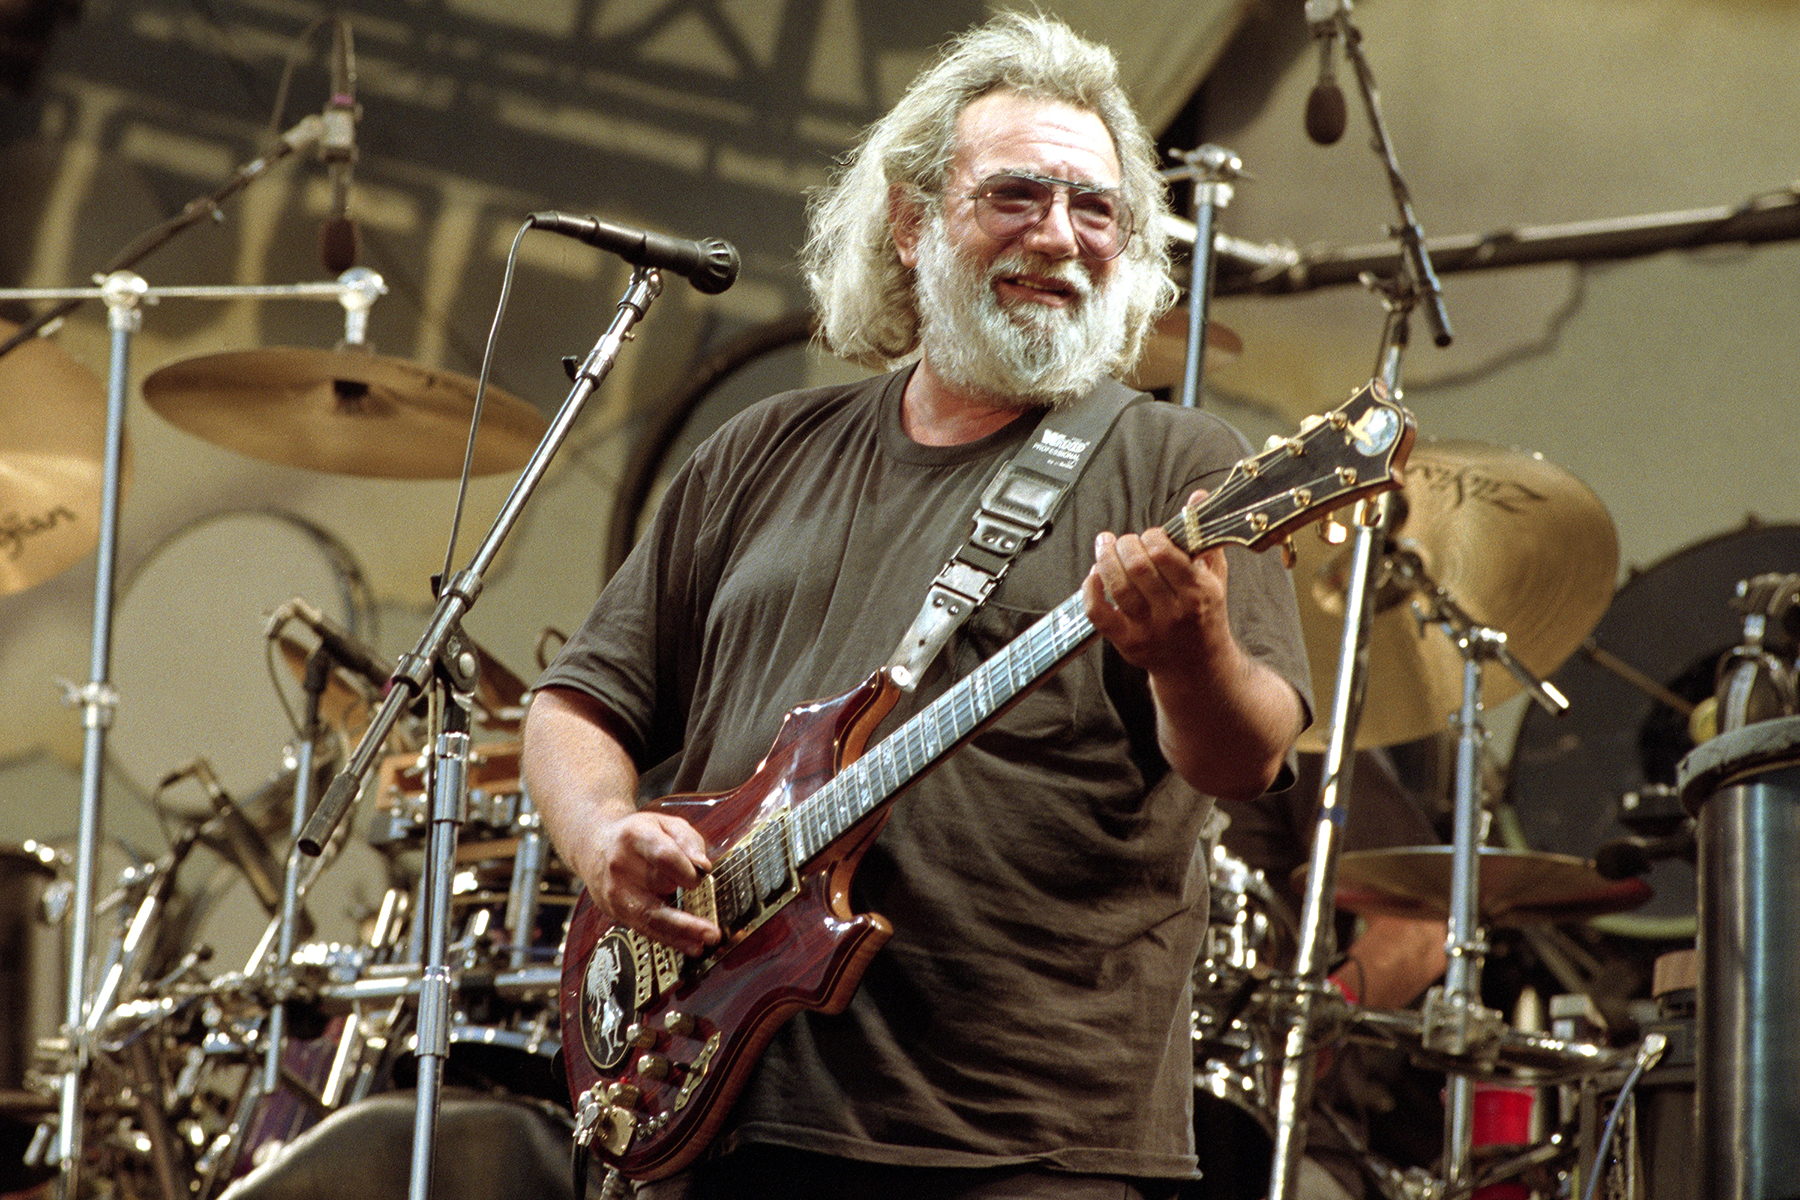 Jerry Garcia of the Grateful Dead performs at Cal Expo Amphitheatre on August 14, 1991 in Sacramento, California. (Photo by Tim Mosenfelder/Getty Images)